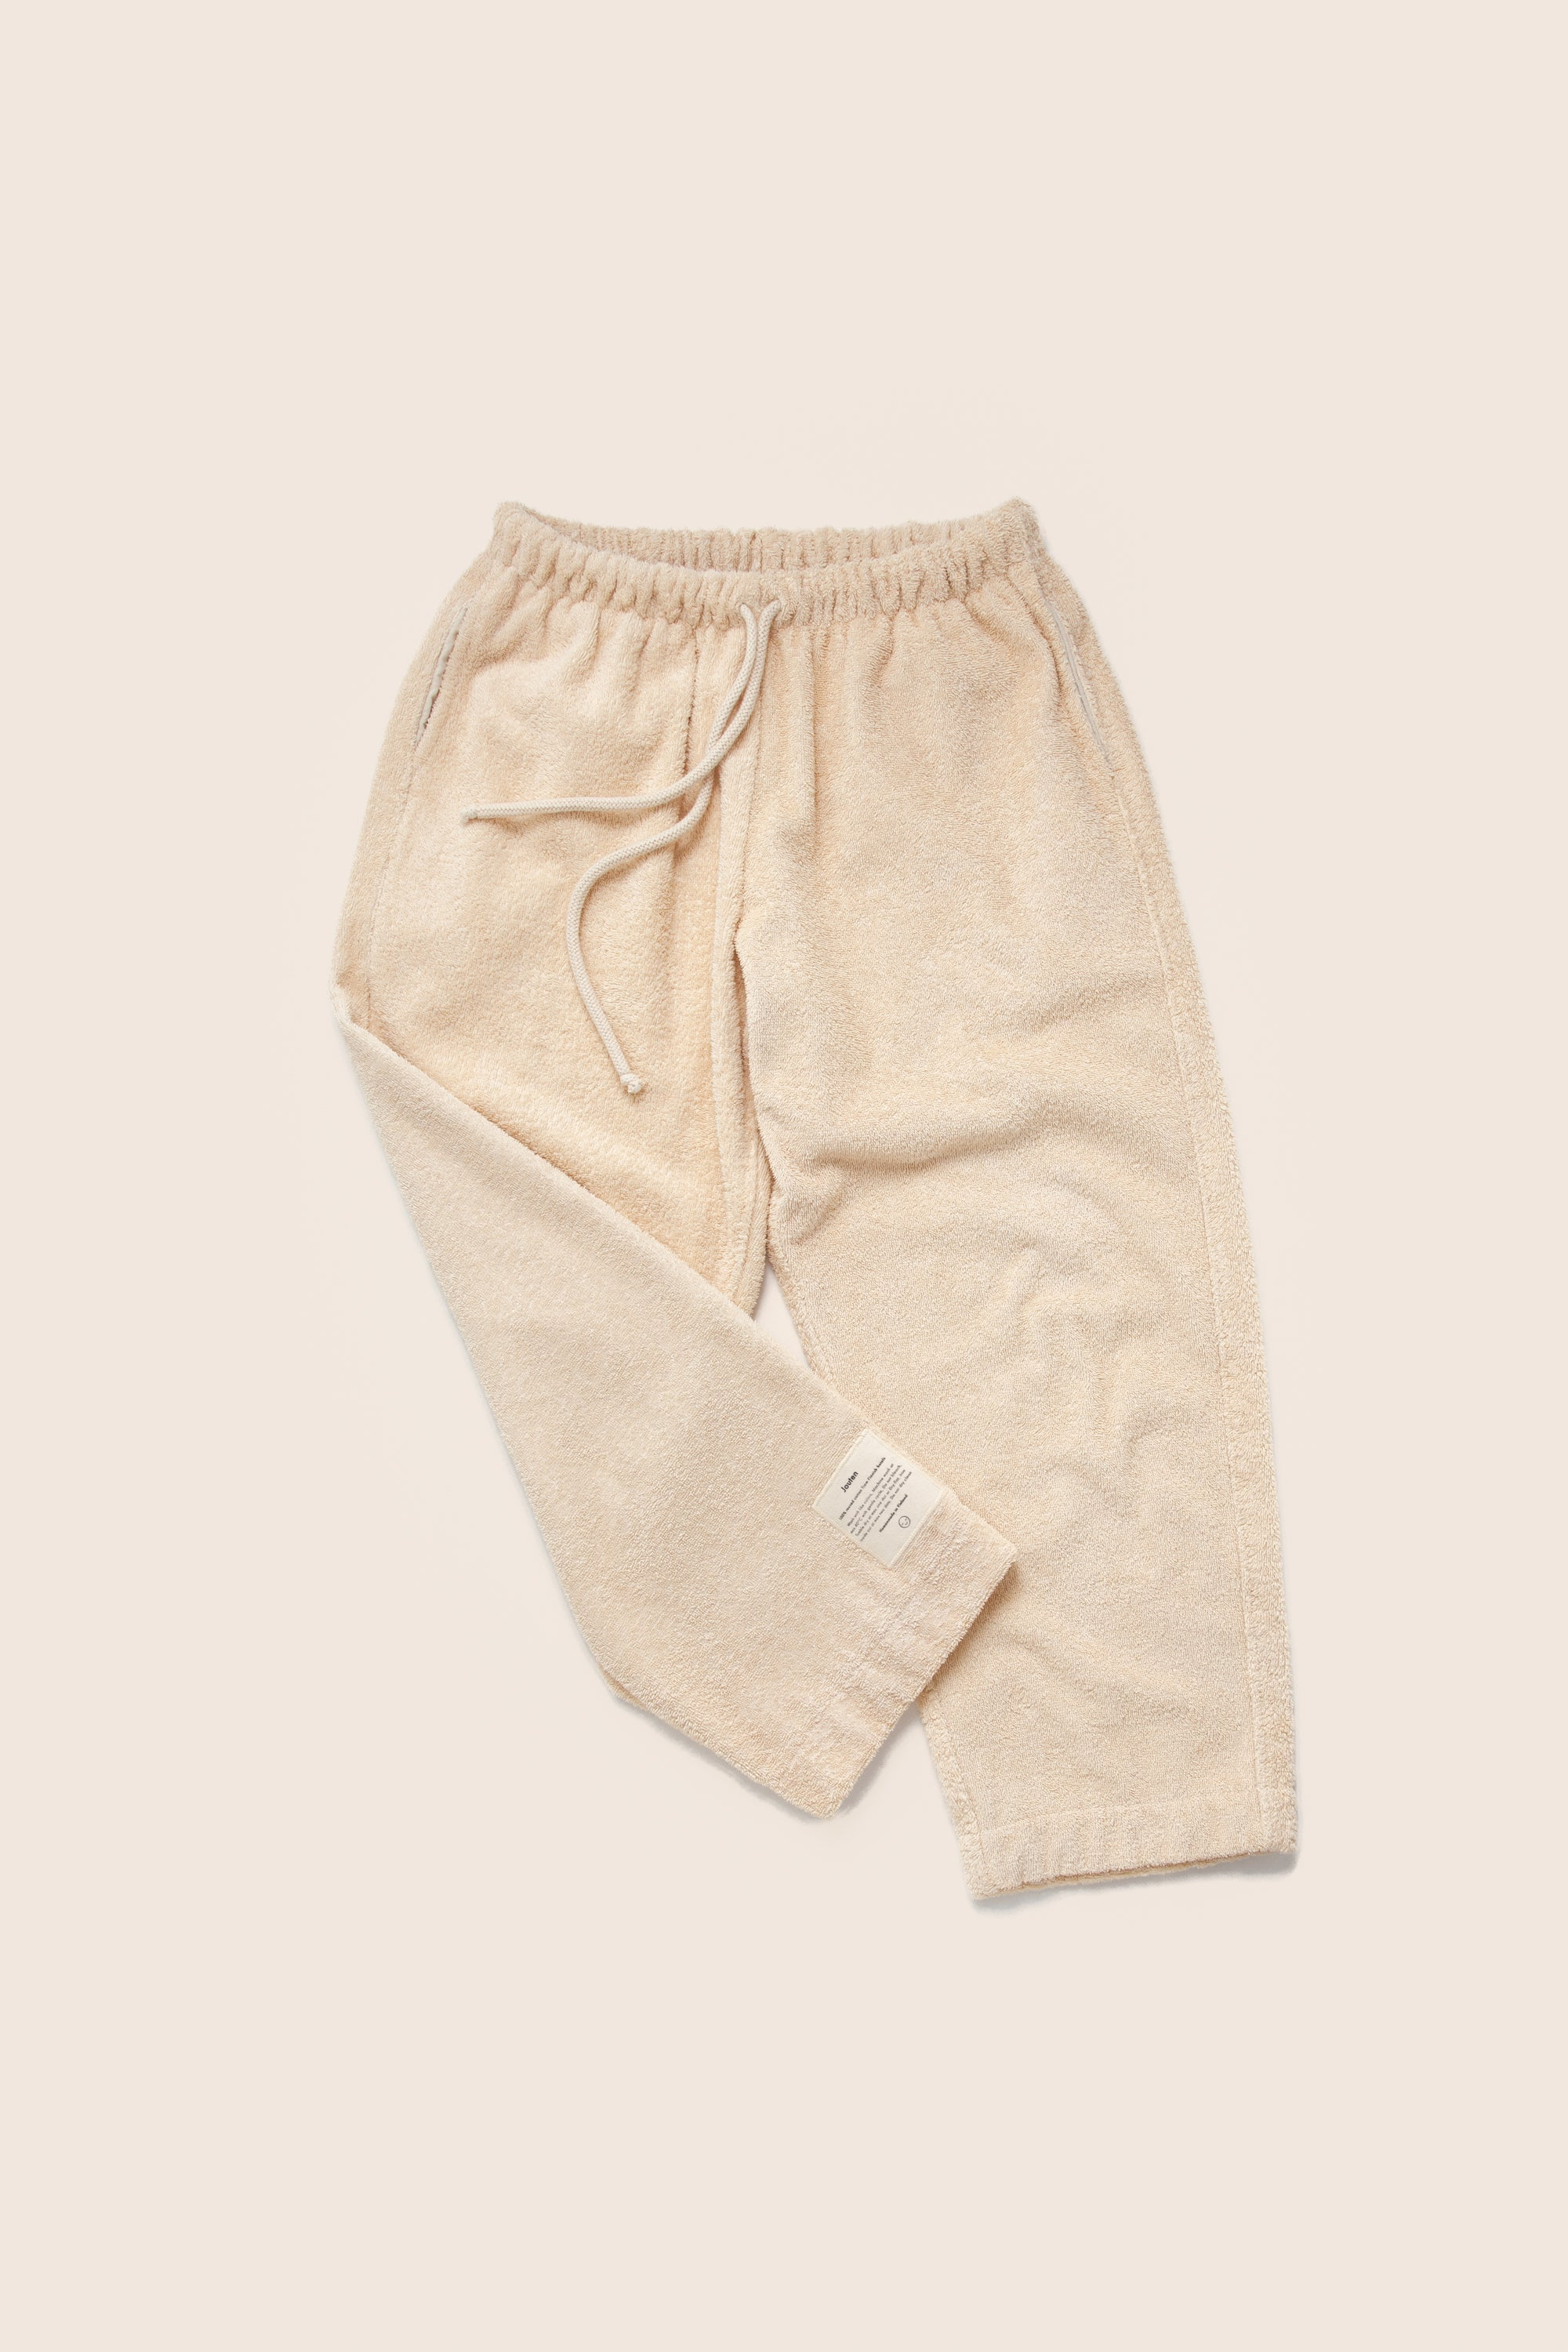 Unisex Cropped Terry Pants in Sand